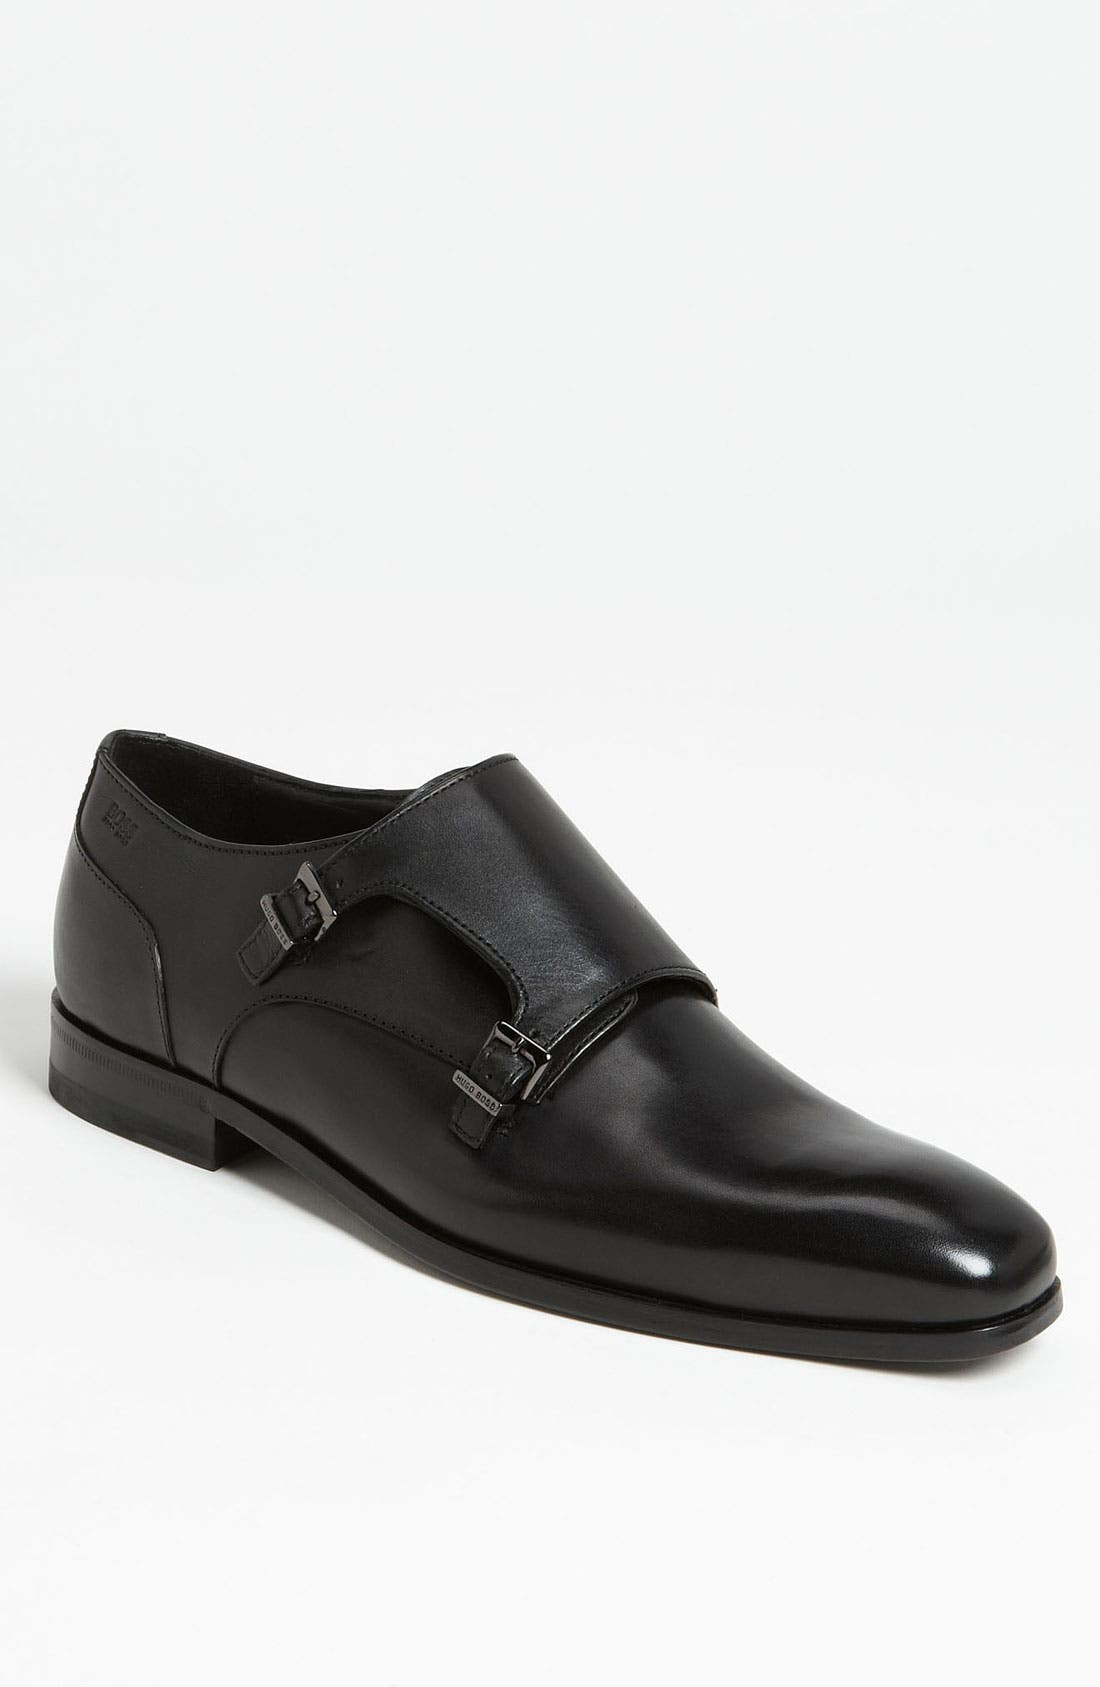 Alternate Image 1 Selected - BOSS Black 'Copers' Double Monk Strap Slip-On